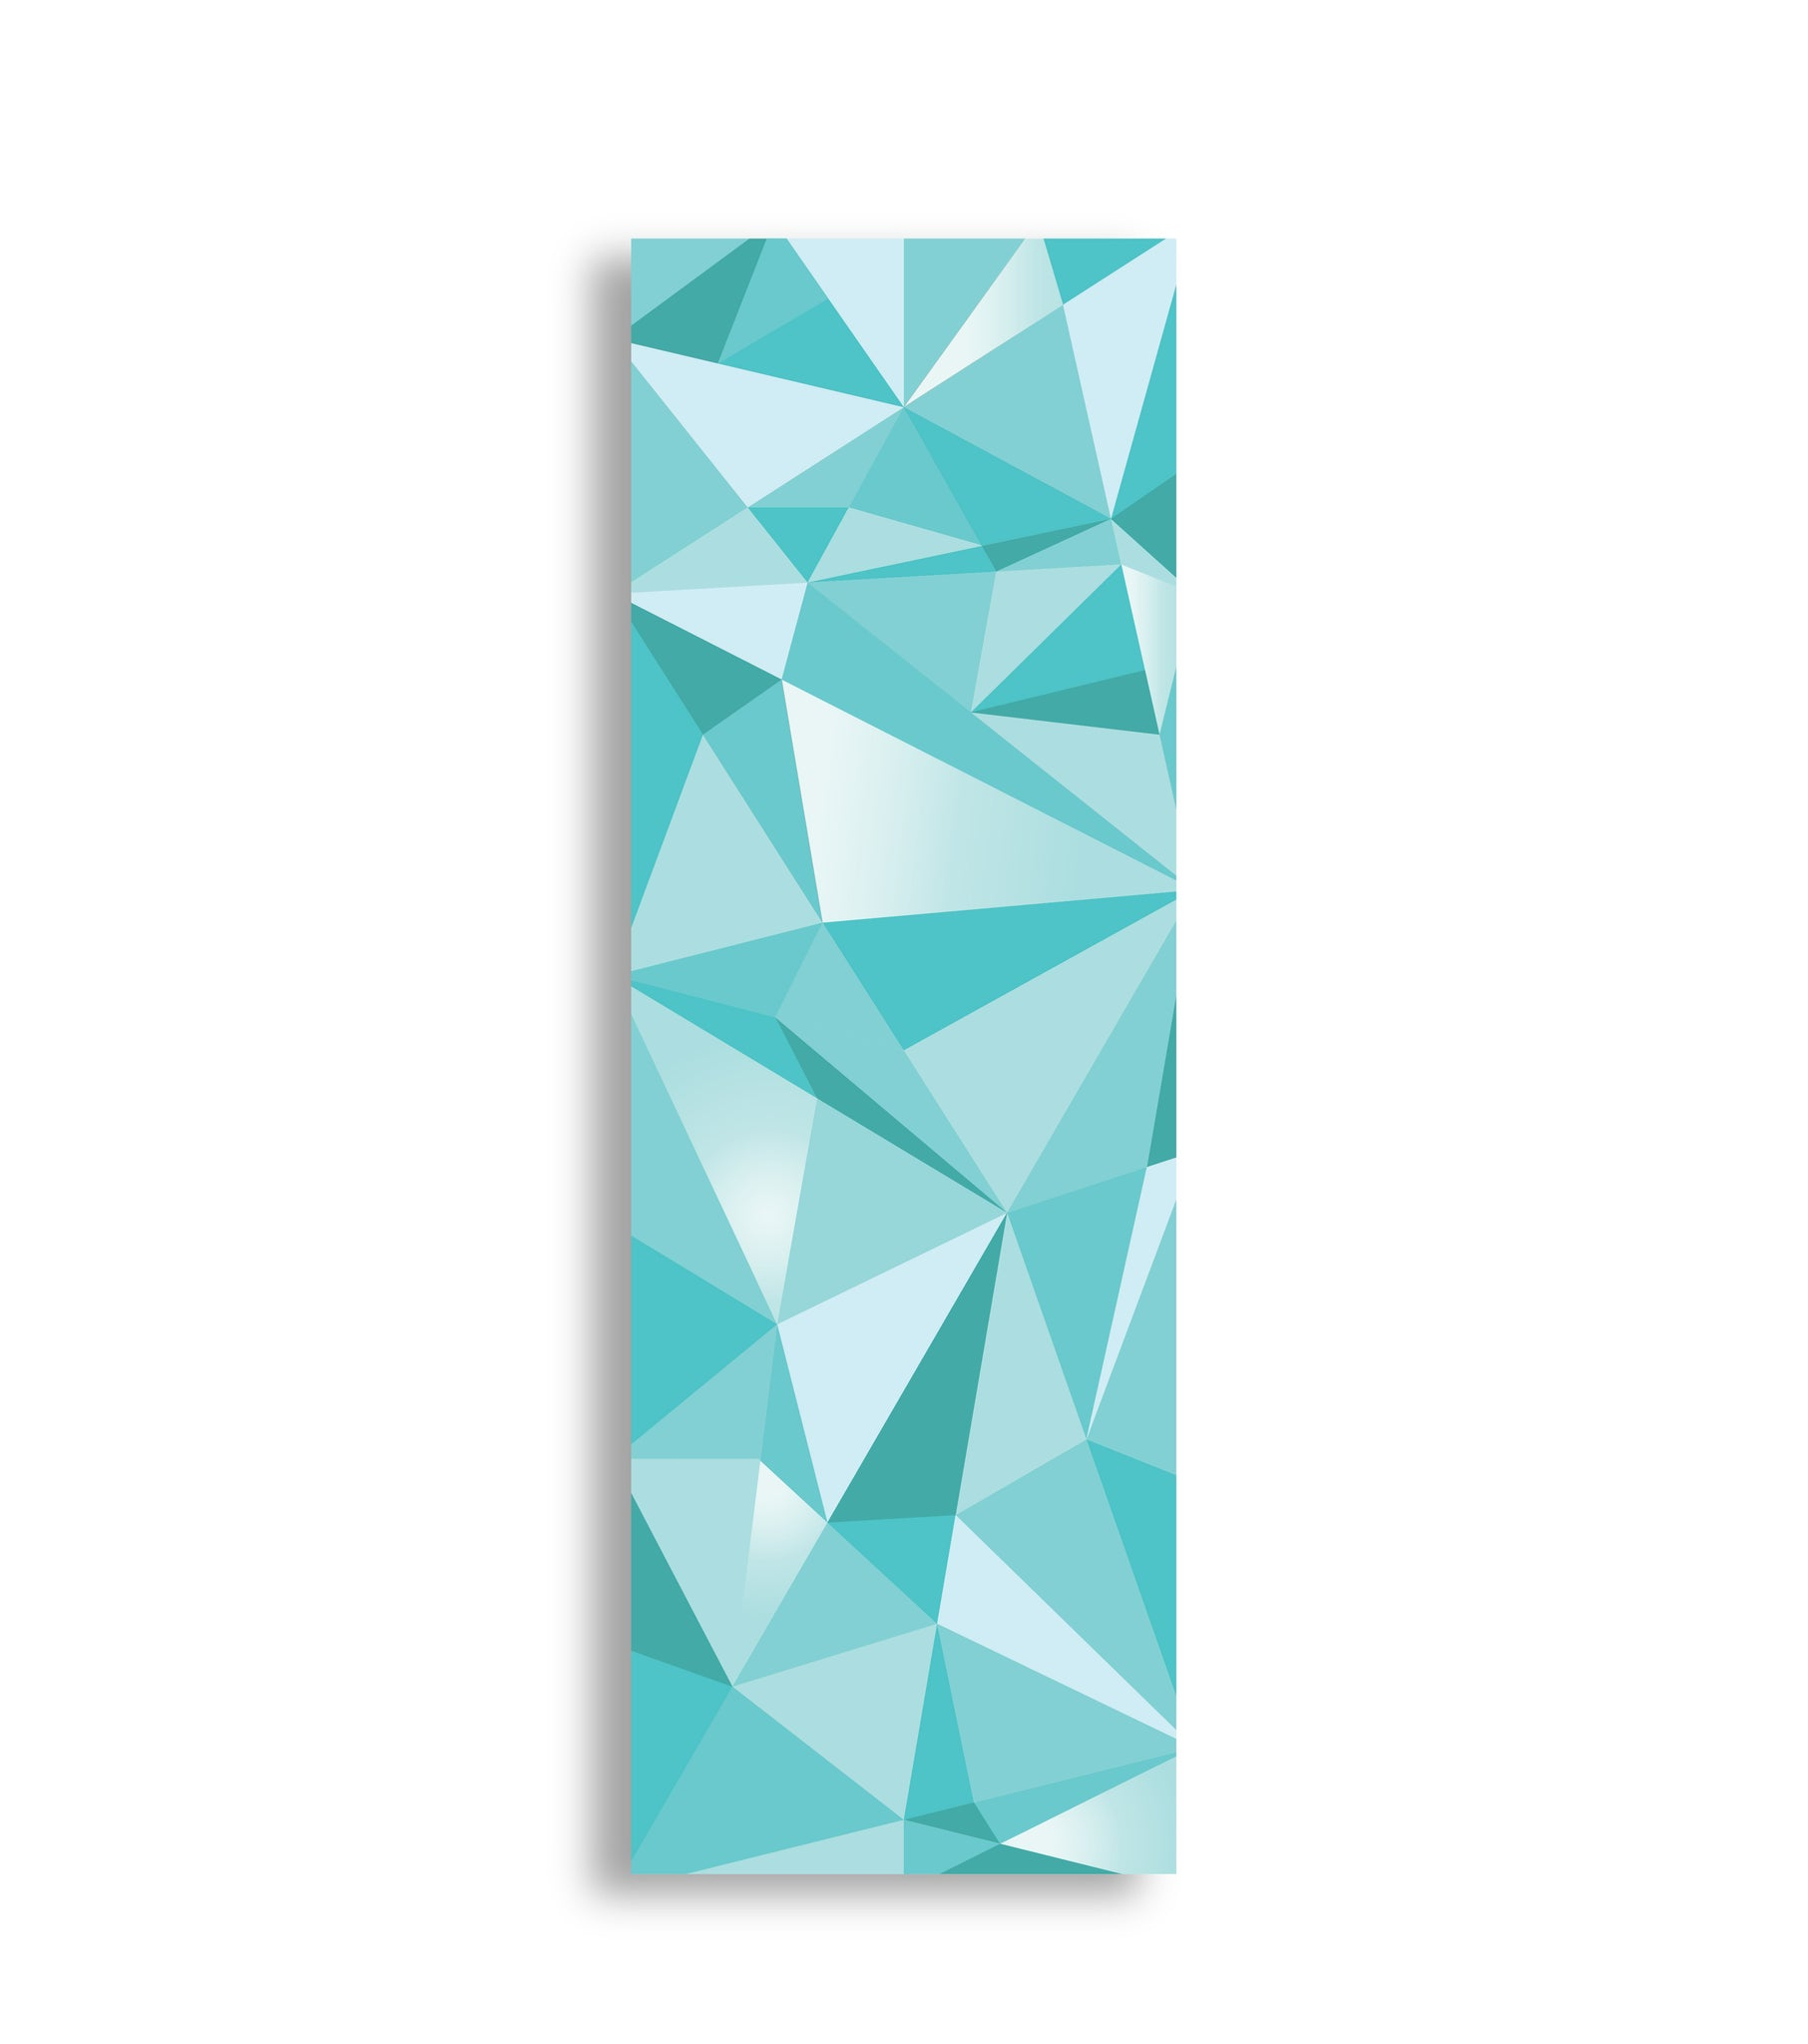 Tectonic - Modern Geometrics in Teal & Graphite.